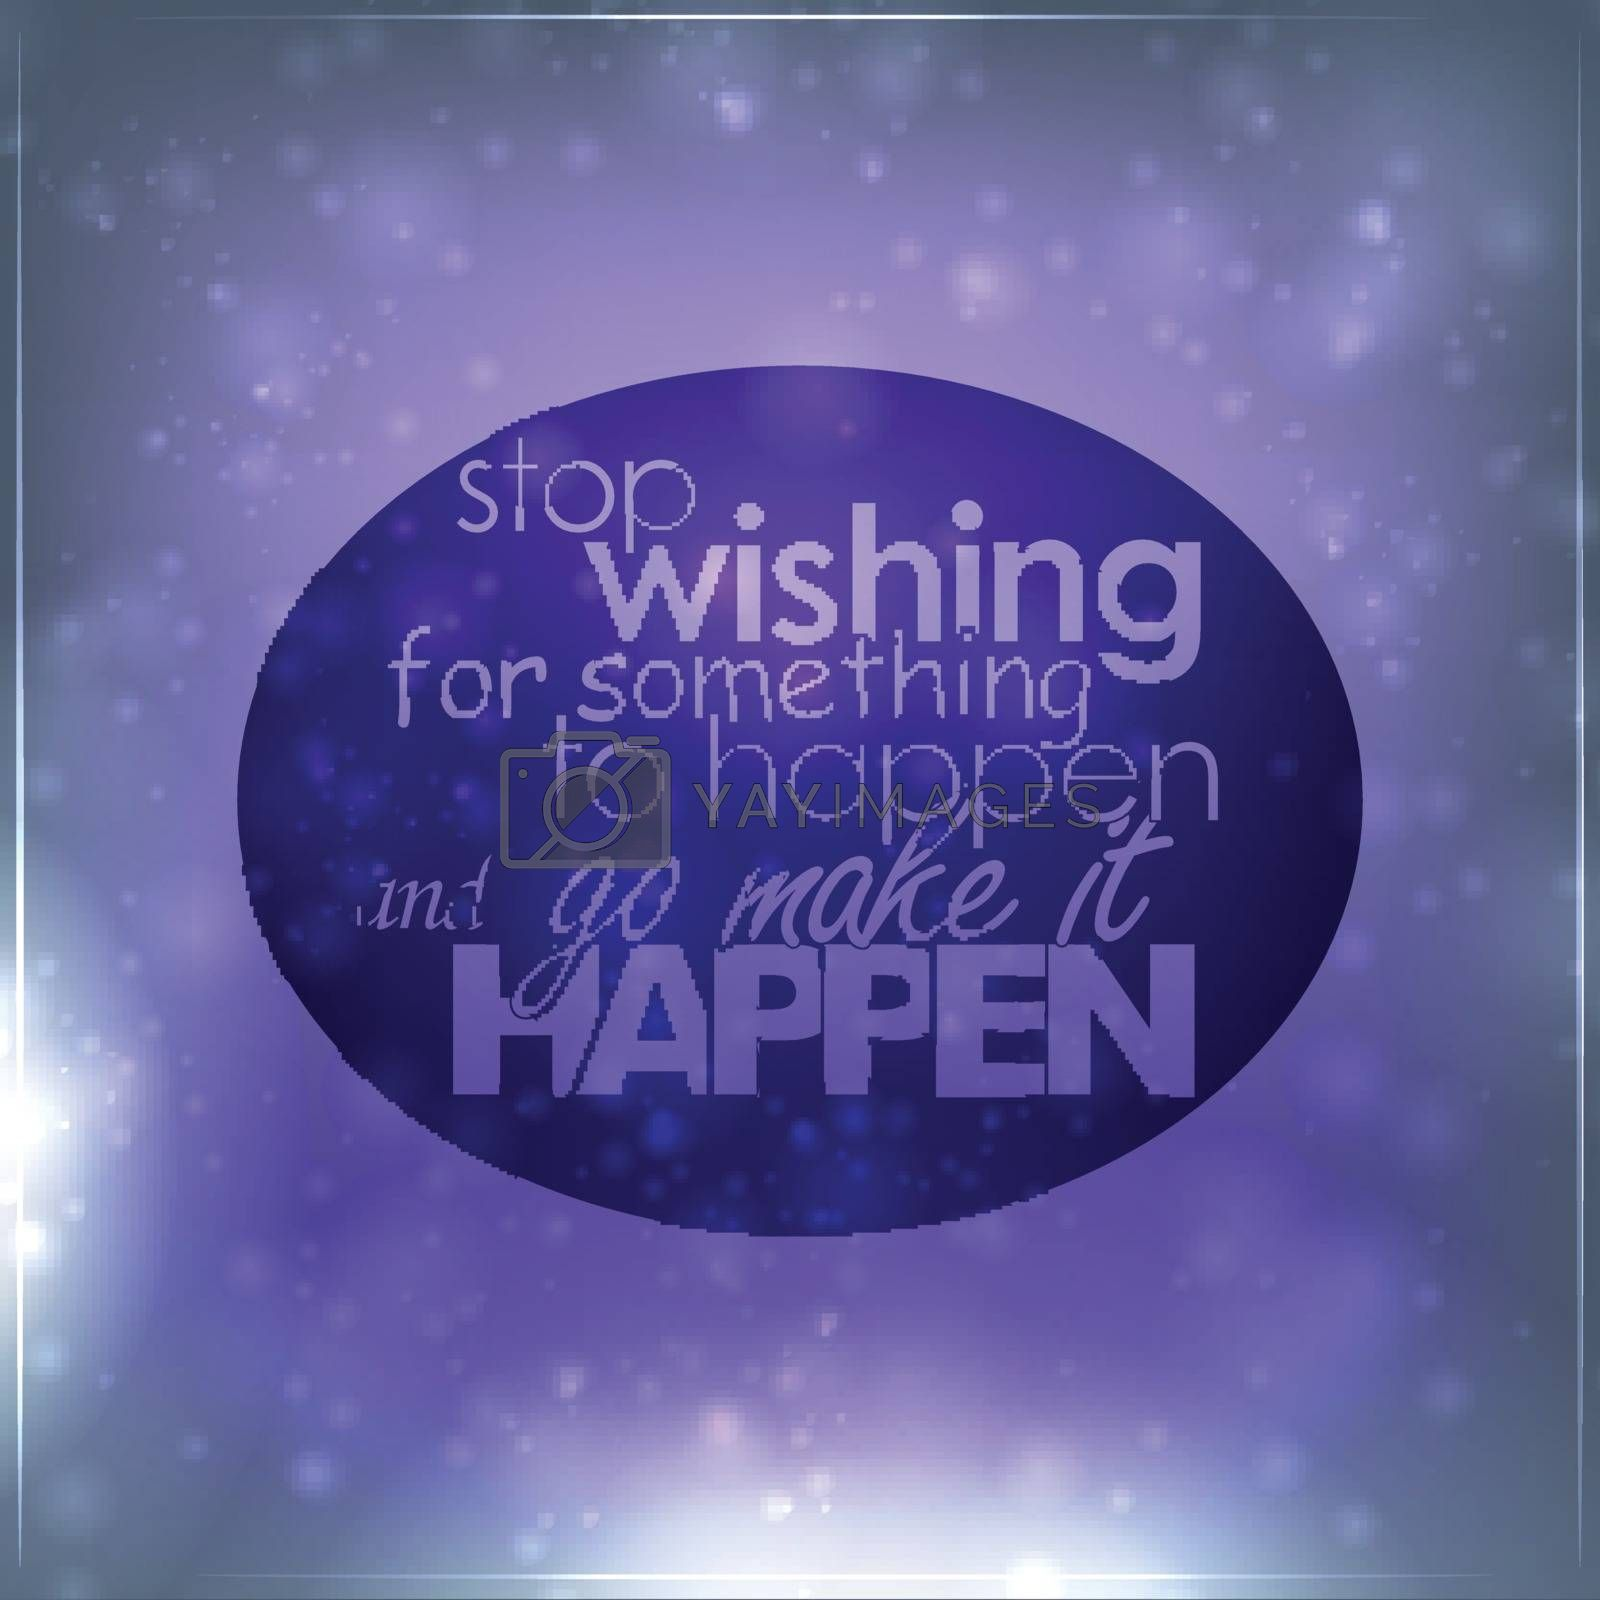 Royalty free image of Stop wishing for something to happen by maxmitzu